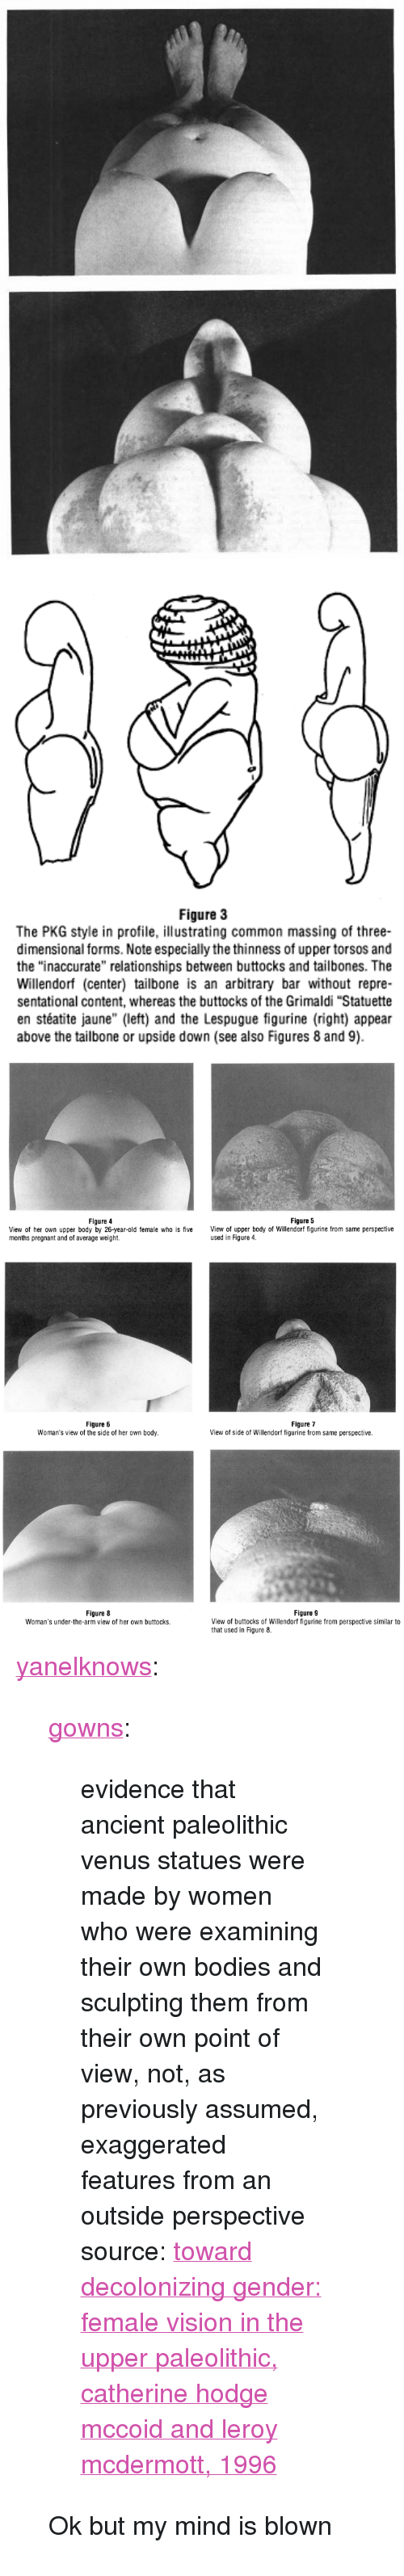 """Bodies , Pregnant, and Relationships: Figure 3  The PKG style in profile, illustrating common massing of three-  dimensional forms. Note especially the thinness of upper torsos and  the """"inaccurate"""" relationships between buttocks and tailbones. The  Willendorf (center) tailbone is an arbitrary bar without repre-  sentational content, whereas the buttocks of the Grimaldi """"Statuette  en stéatite jaune"""" (left) and the Lespugue figurine (right) appear  above the tailbone or upside down (see also Figures 8 and 9).   Figure 4  Figure 5  View of her own upper body by 26-year-old female who is five View of upper body of Willendorf figurine from same perspective  months pregnant and of average weight.  used in Figure 4   Figure 6  Woman's view of the side of her own body.  Figure 7  View of side of Willendorf figurine from same perspective.   Figure 8  Woman's under-the-arm view of her own buttocks.  Figure 9  View of buttocks of Willendorf figurine from perspective similar to  that used in Figure 8 <p><a href=""""http://yanelknows.tumblr.com/post/167147214107/gowns-evidence-that-ancient-paleolithic-venus"""" class=""""tumblr_blog"""">yanelknows</a>:</p><blockquote> <p><a href=""""http://gowns.tumblr.com/post/167128831158/evidence-that-ancient-paleolithic-venus-statues"""" class=""""tumblr_blog"""">gowns</a>:</p> <blockquote> <p>evidence that ancient paleolithic venus statues were made by women who were examining their own bodies and sculpting them from their own point of view, not, as previously assumed, exaggerated features from an outside perspective</p> <p>source: <a href=""""http://www.kbcc.cuny.edu/academicdepartments/art/Documents/durantaspaleolithicvenus.pdf"""">toward decolonizing gender: female vision in the upper paleolithic, catherine hodge mccoid and leroy mcdermott, 1996</a></p> </blockquote>  <p>Ok but my mind is blown </p> </blockquote>"""